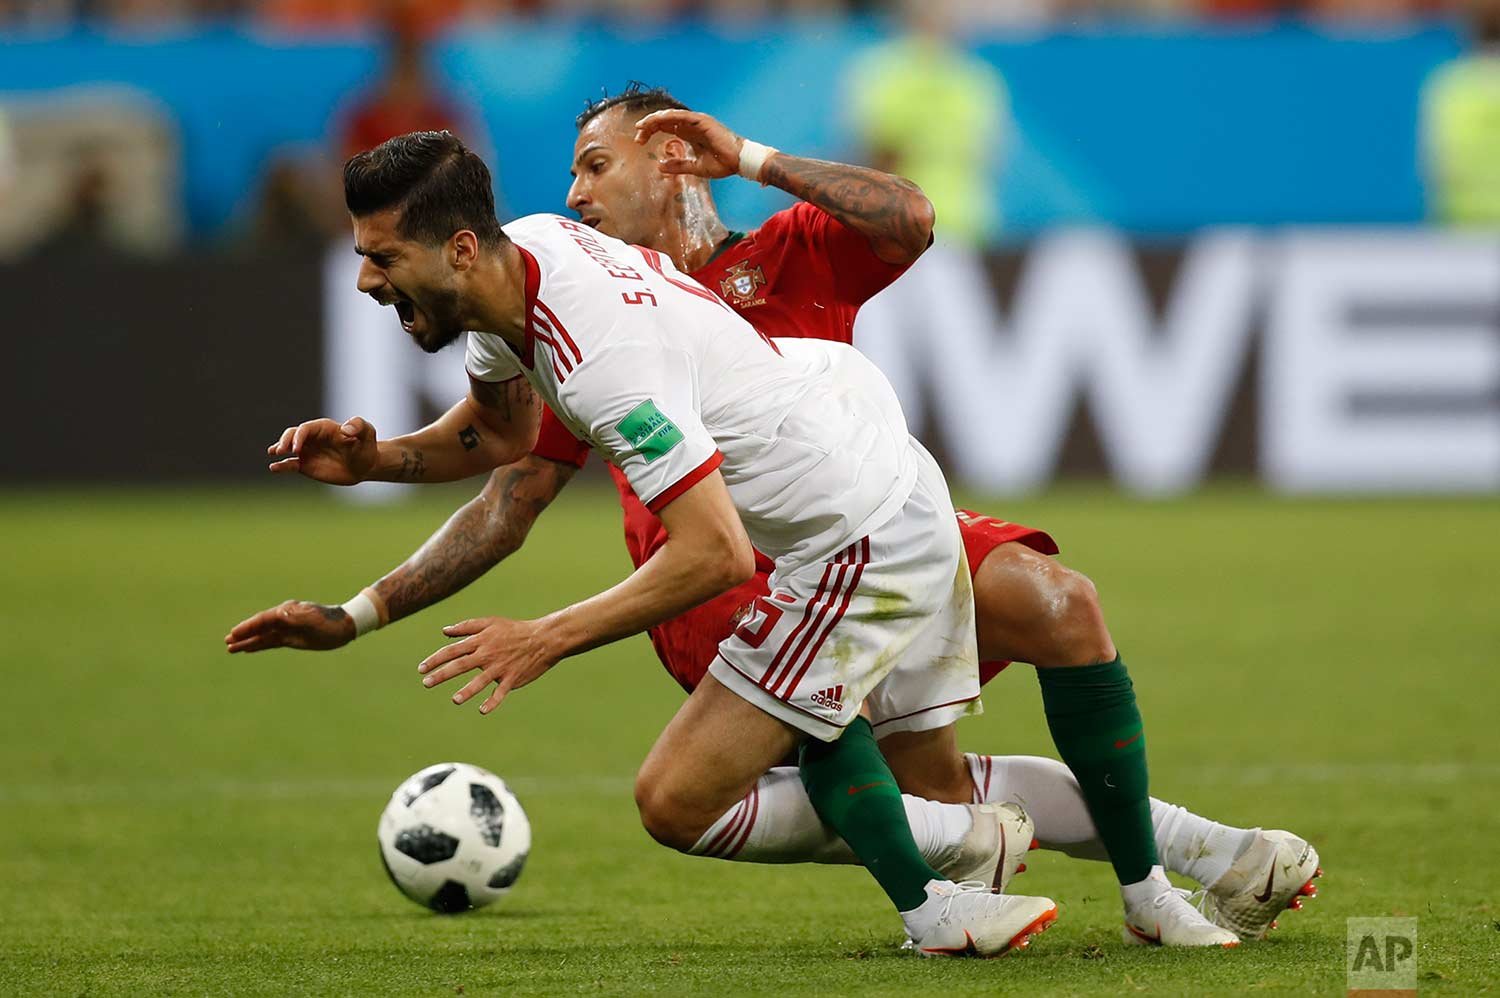 Iran's Saeid Ezatolahi front, falls as he is tackled by Portugal's Ricardo Quaresma during the group B match between Iran and Portugal at the 2018 soccer World Cup at the Mordovia Arena in Saransk, Russia, Monday, June 25, 2018. (AP Photo/Francisco Seco)